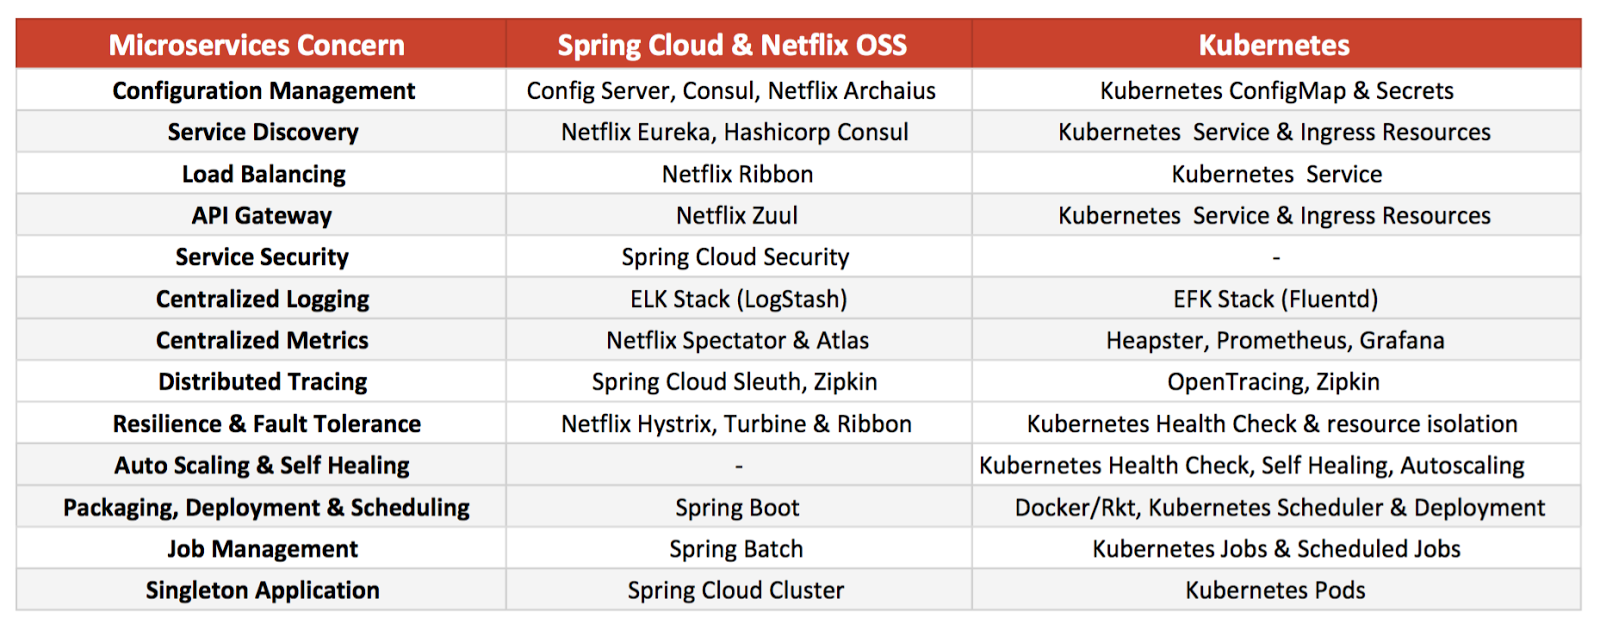 Spring Cloud for Microservices Compared to Kubernetes